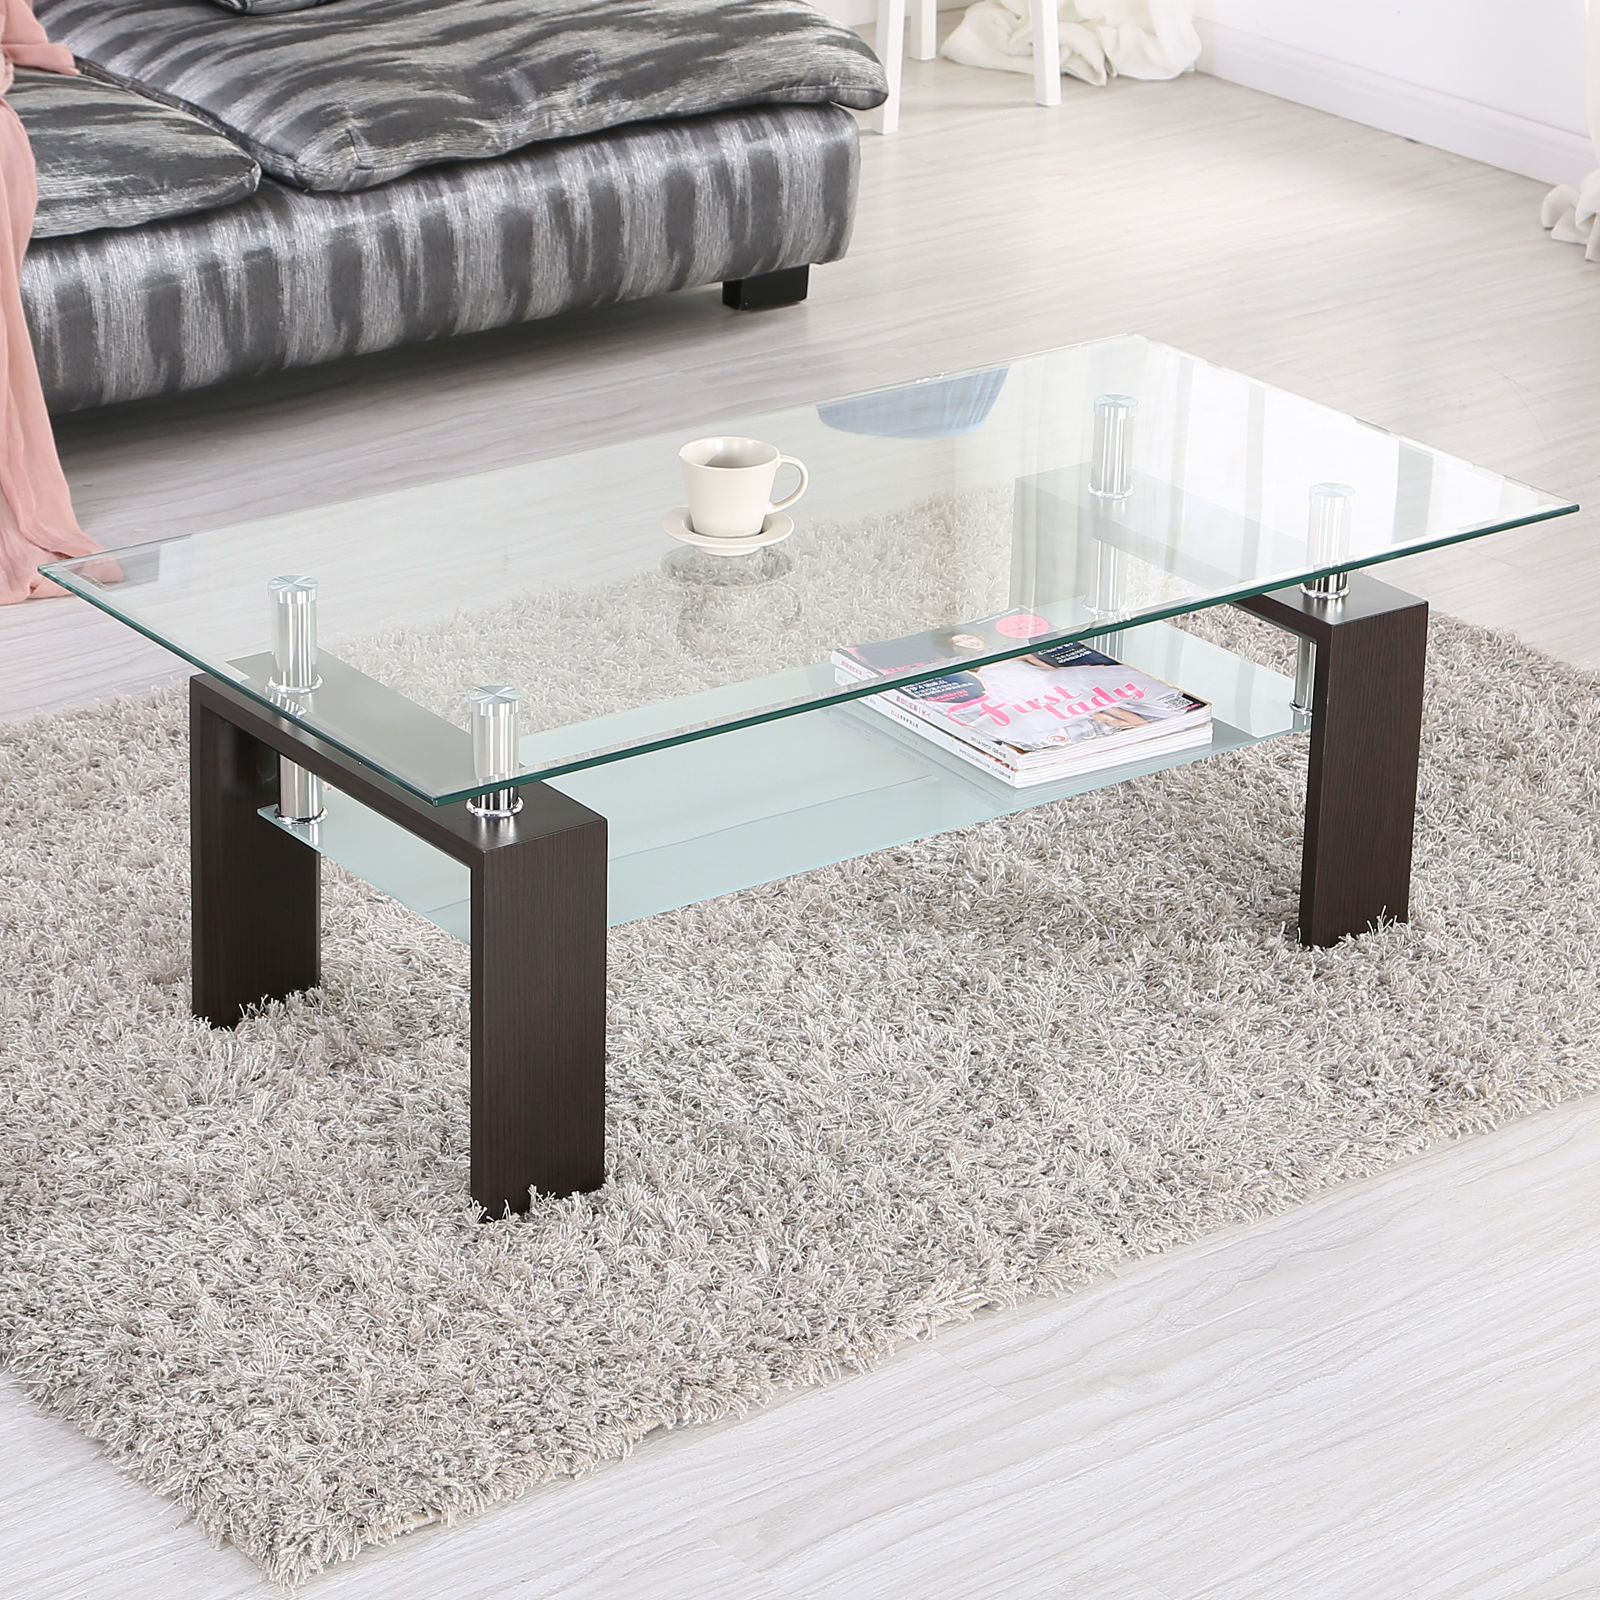 Black coffee table rectangular living room home office glass top wooden frame